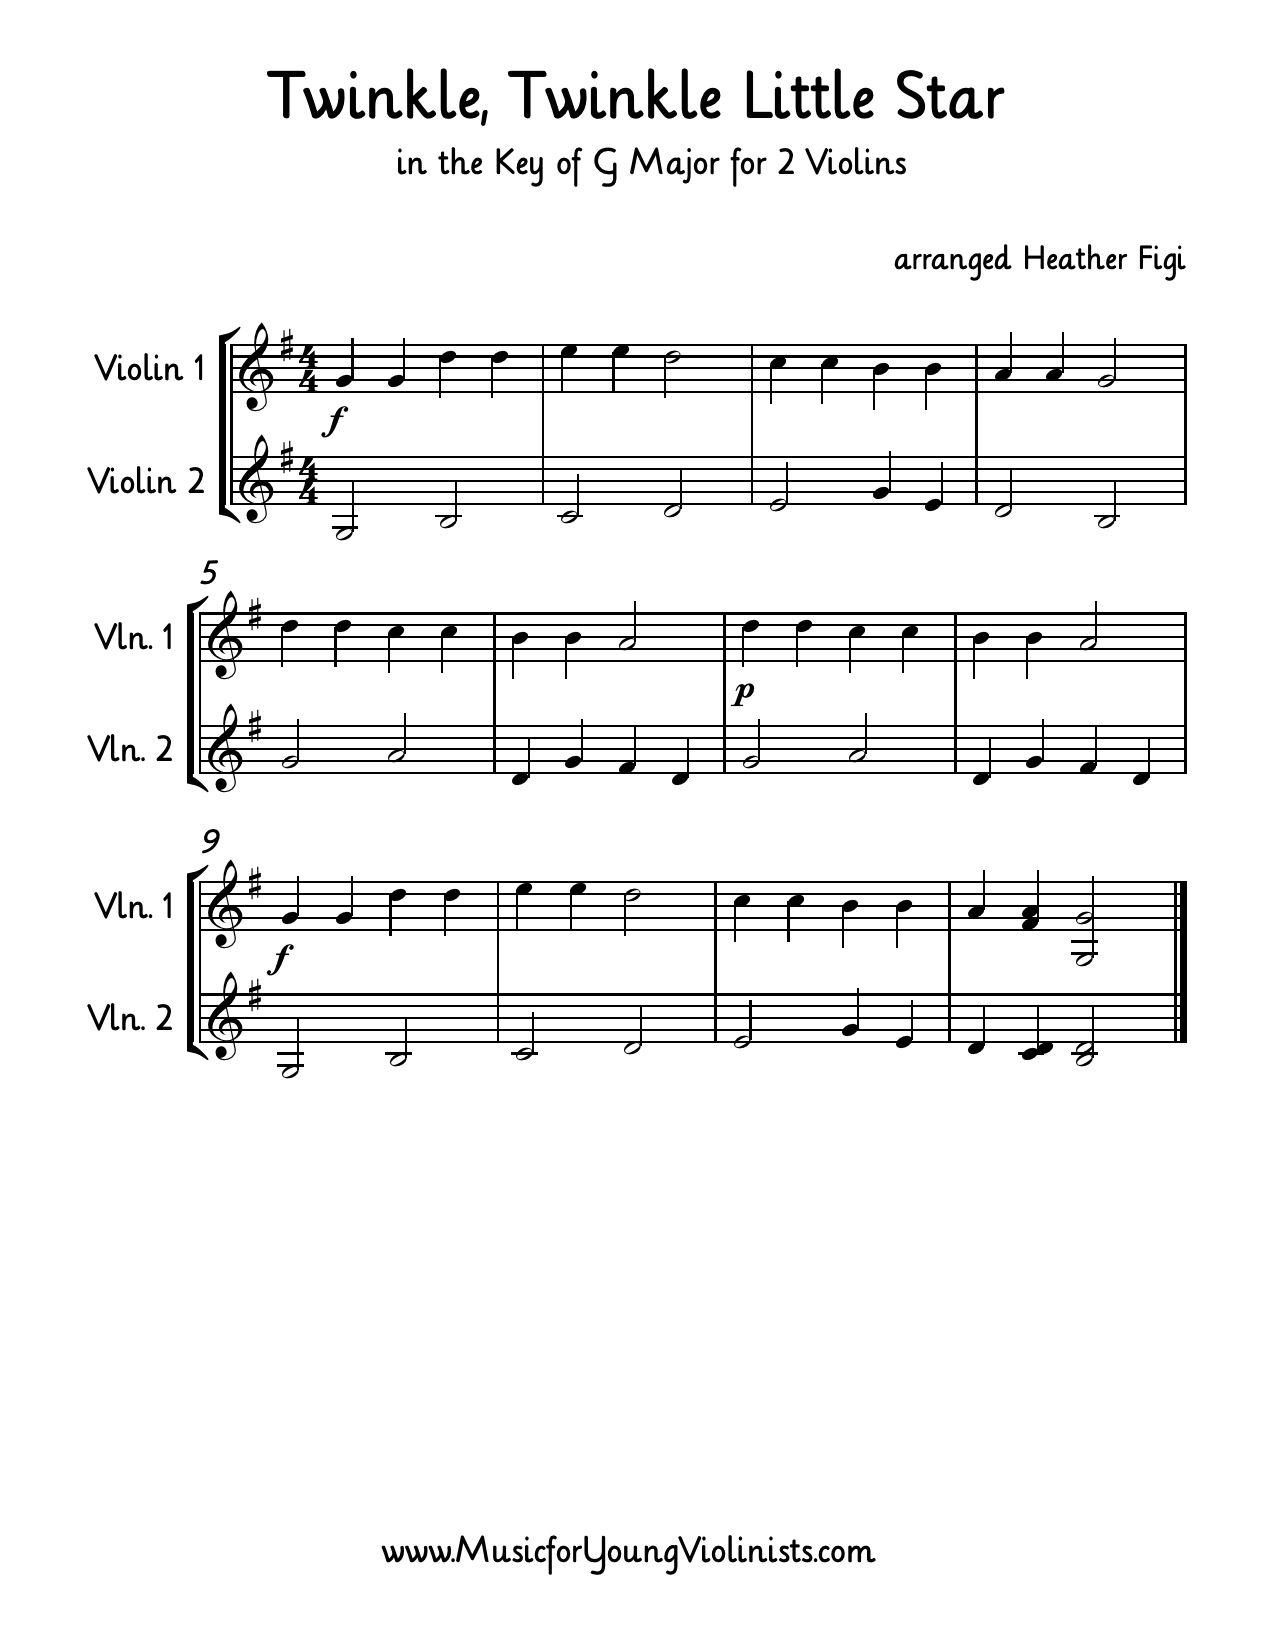 Twinkle Twinkle Little Star In G Major For 2 Violins Arranged By